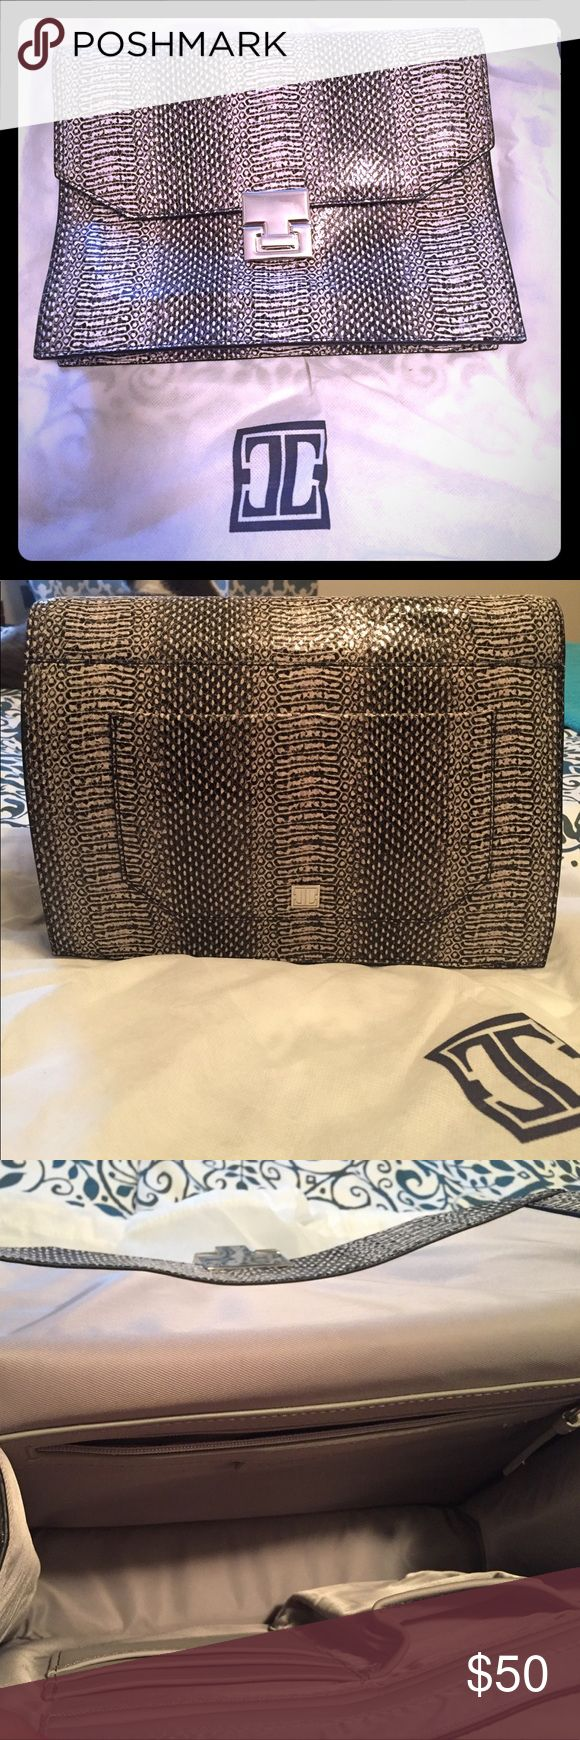 Snake skin Ivanka Trump clutch Classy black and white snake skin Ivanka Trump clutch. Only used once in like new condition with dust cover included. Ivanka Trump Bags Clutches & Wristlets